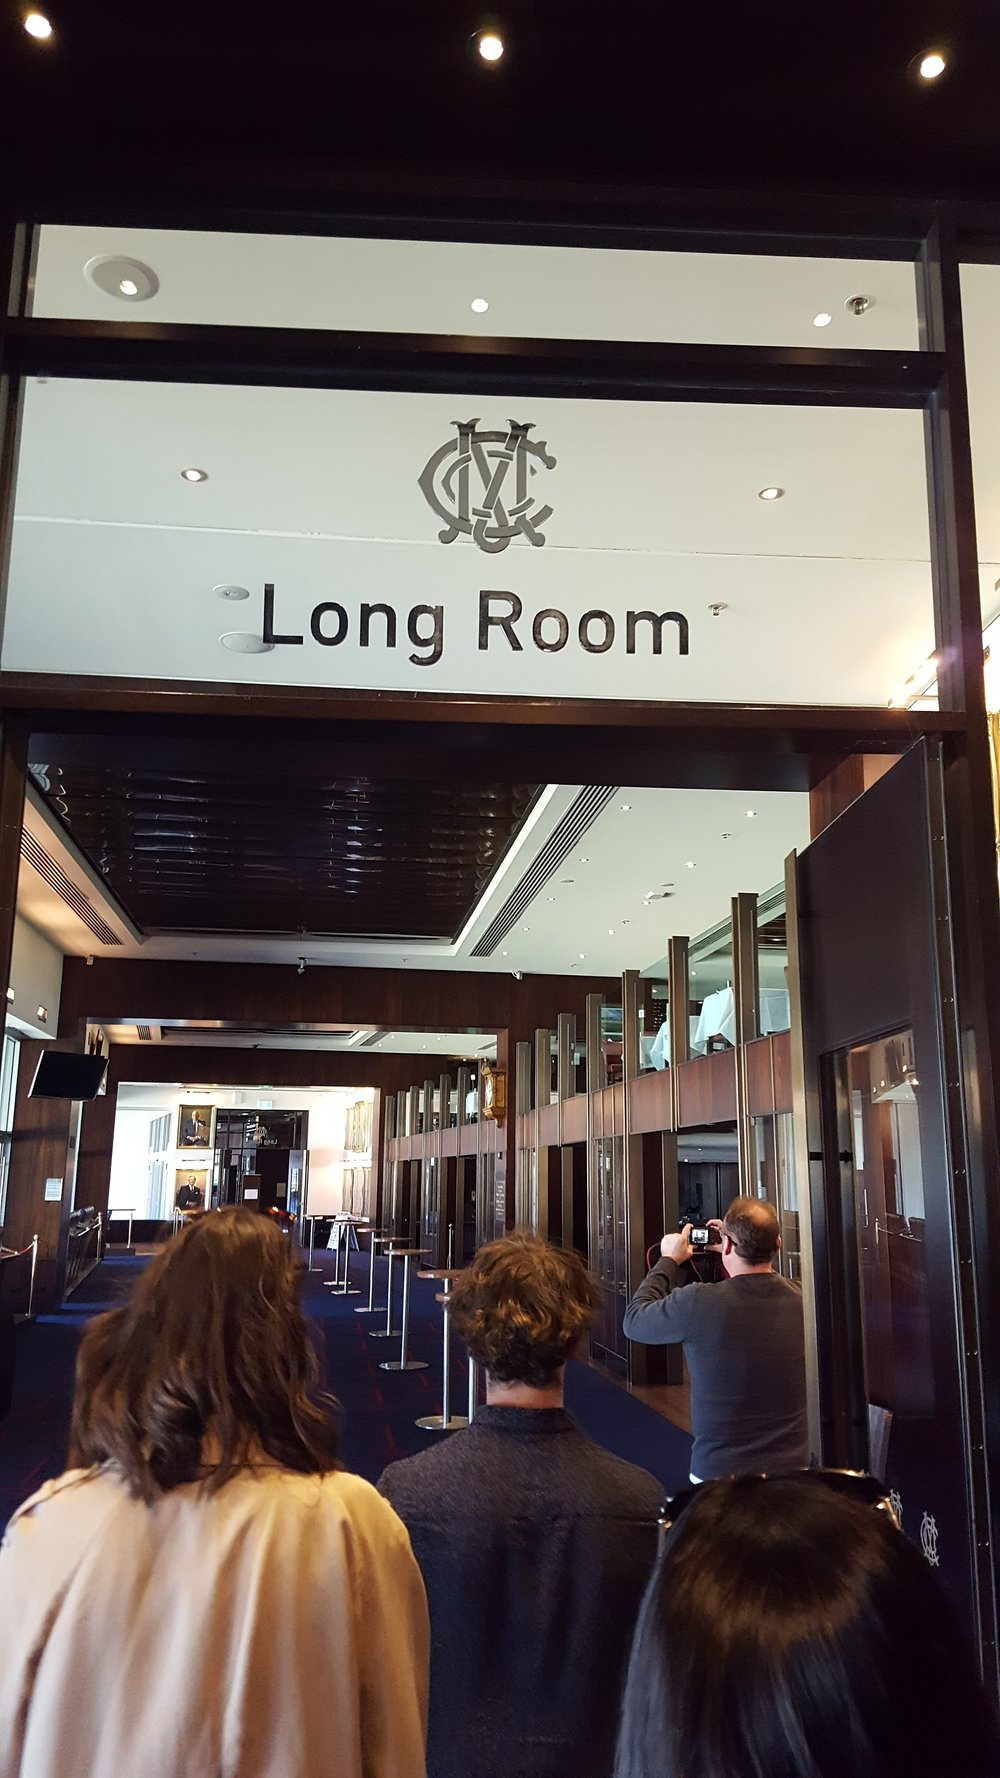 Walking into The Long Room at The MCG on tour with Melbourne Sports Tours